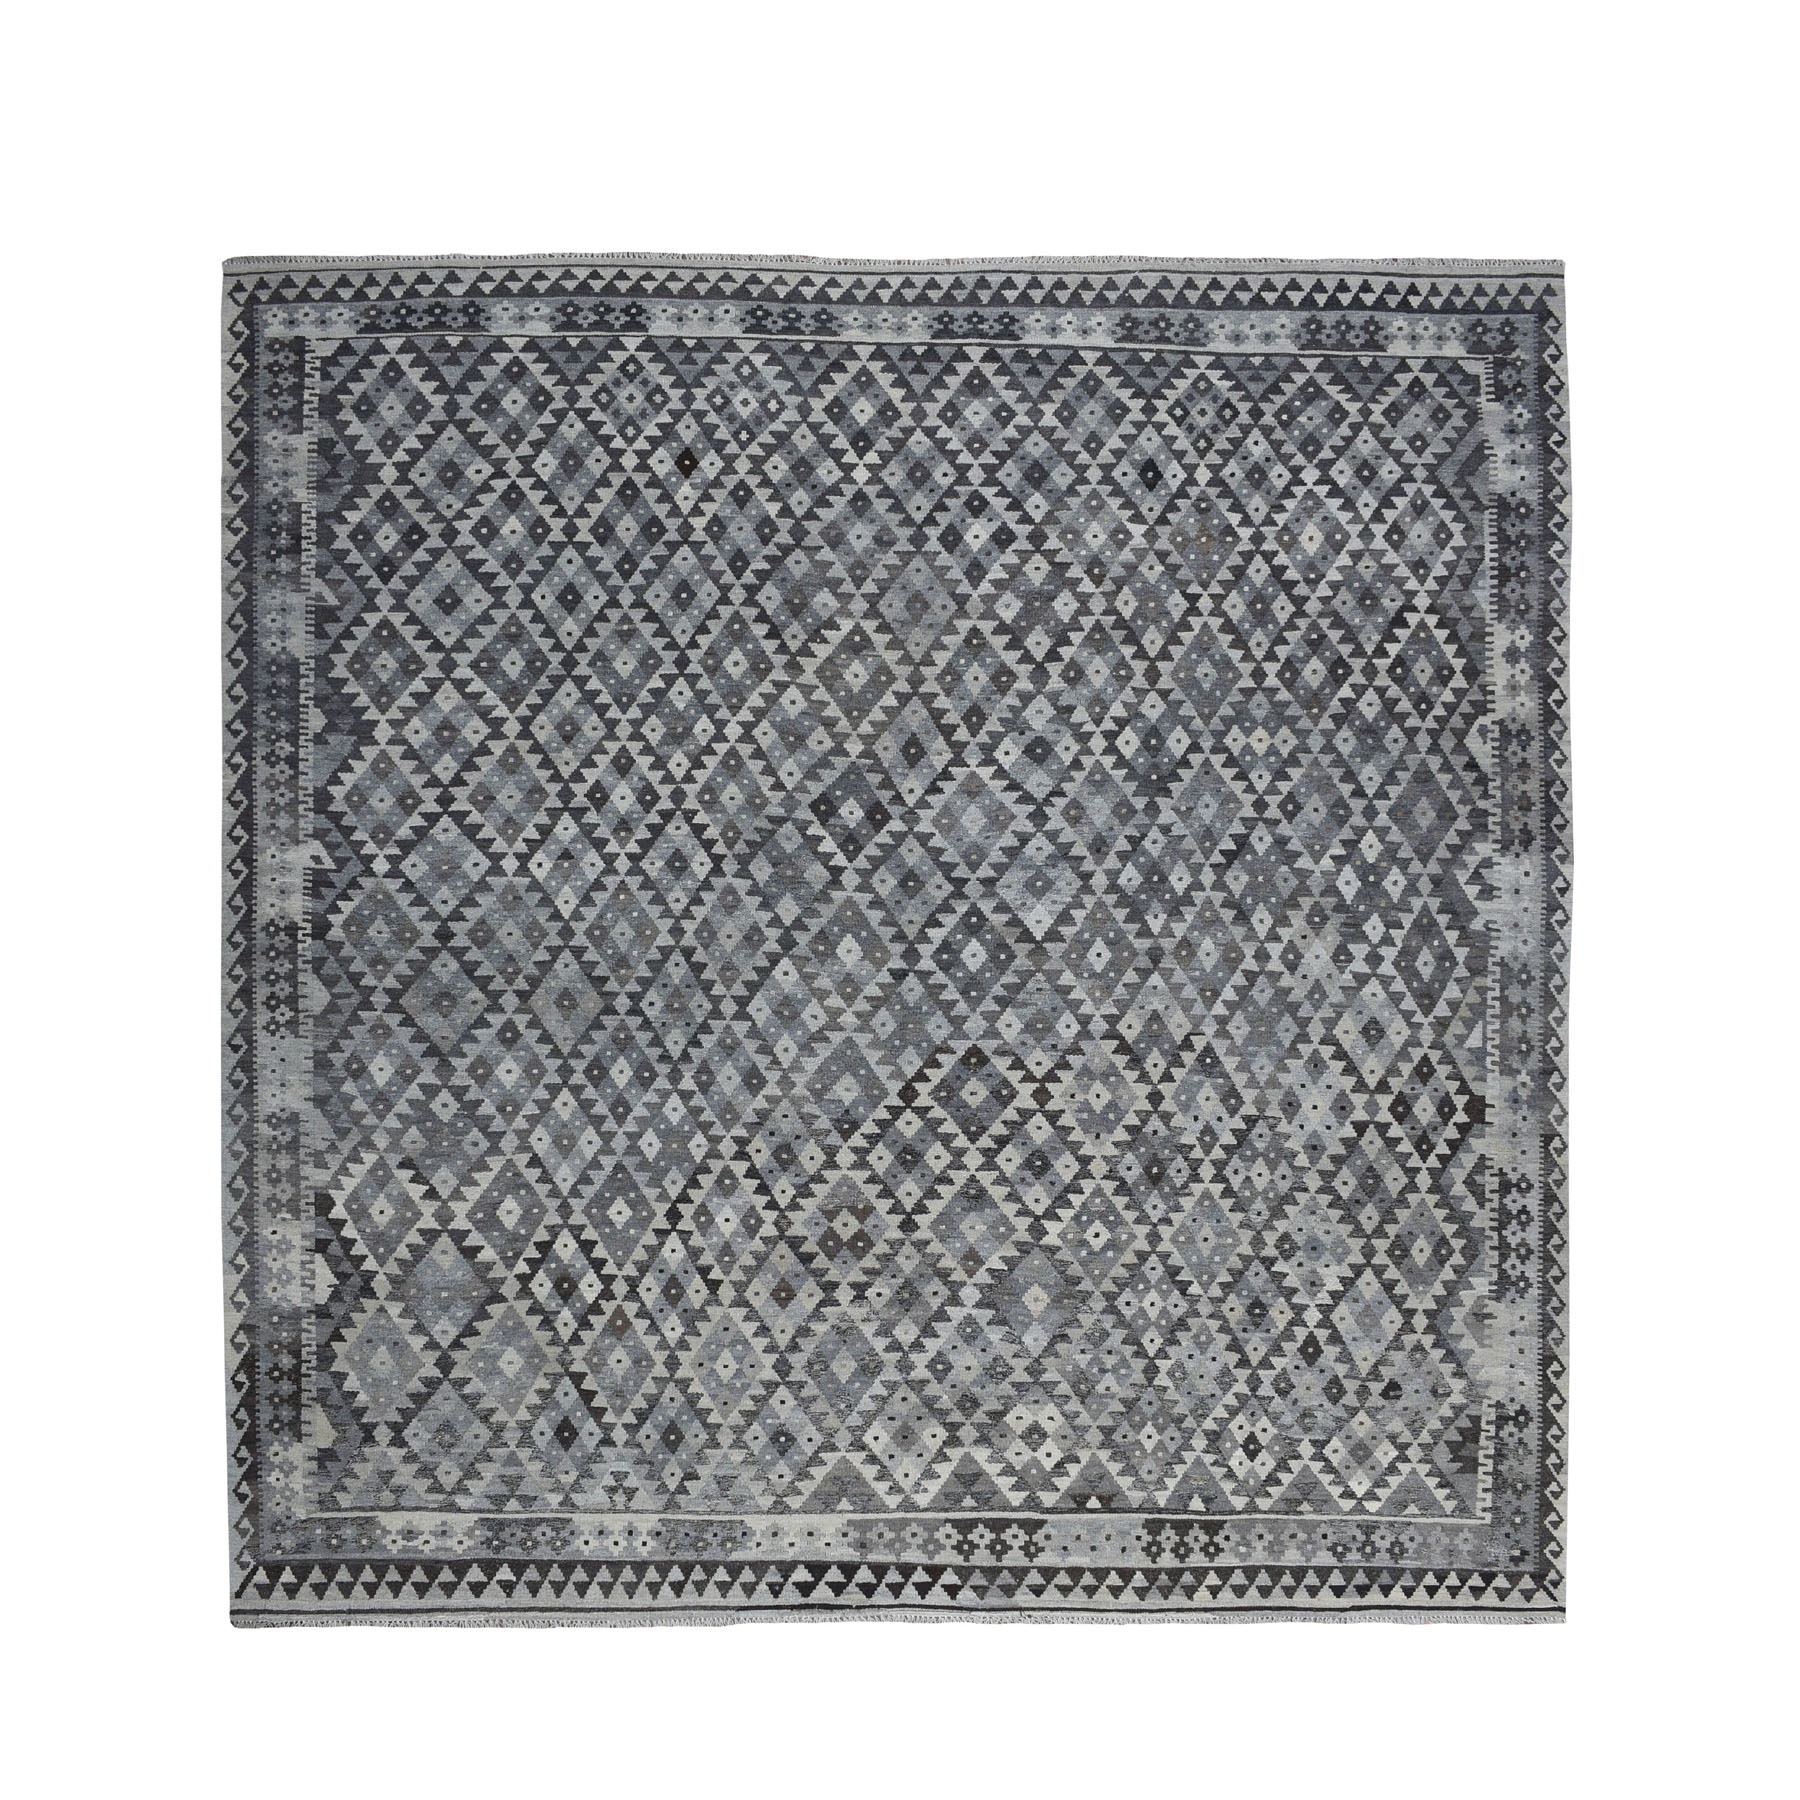 """10'2""""x10'2"""" Square Undyed Natural Wool Afghan Kilim Reversible Hand Woven Oriental Rug"""